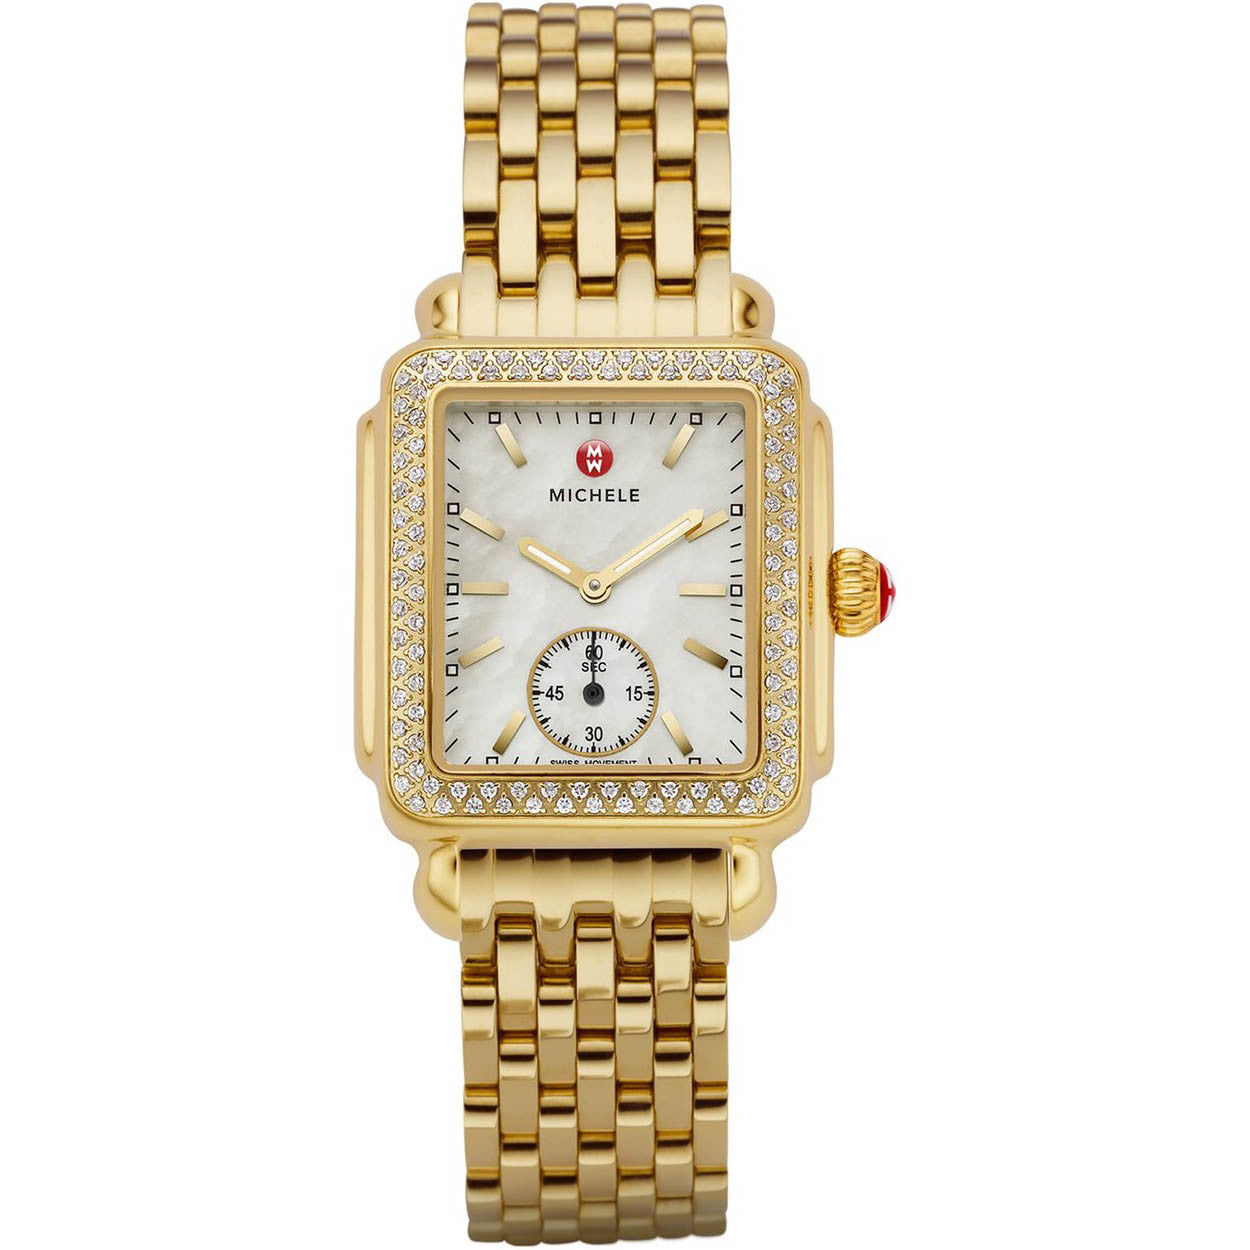 Michele Deco 16 Mother of Pearl Diamond Bezel Seconds Window Gold-Plated Watch